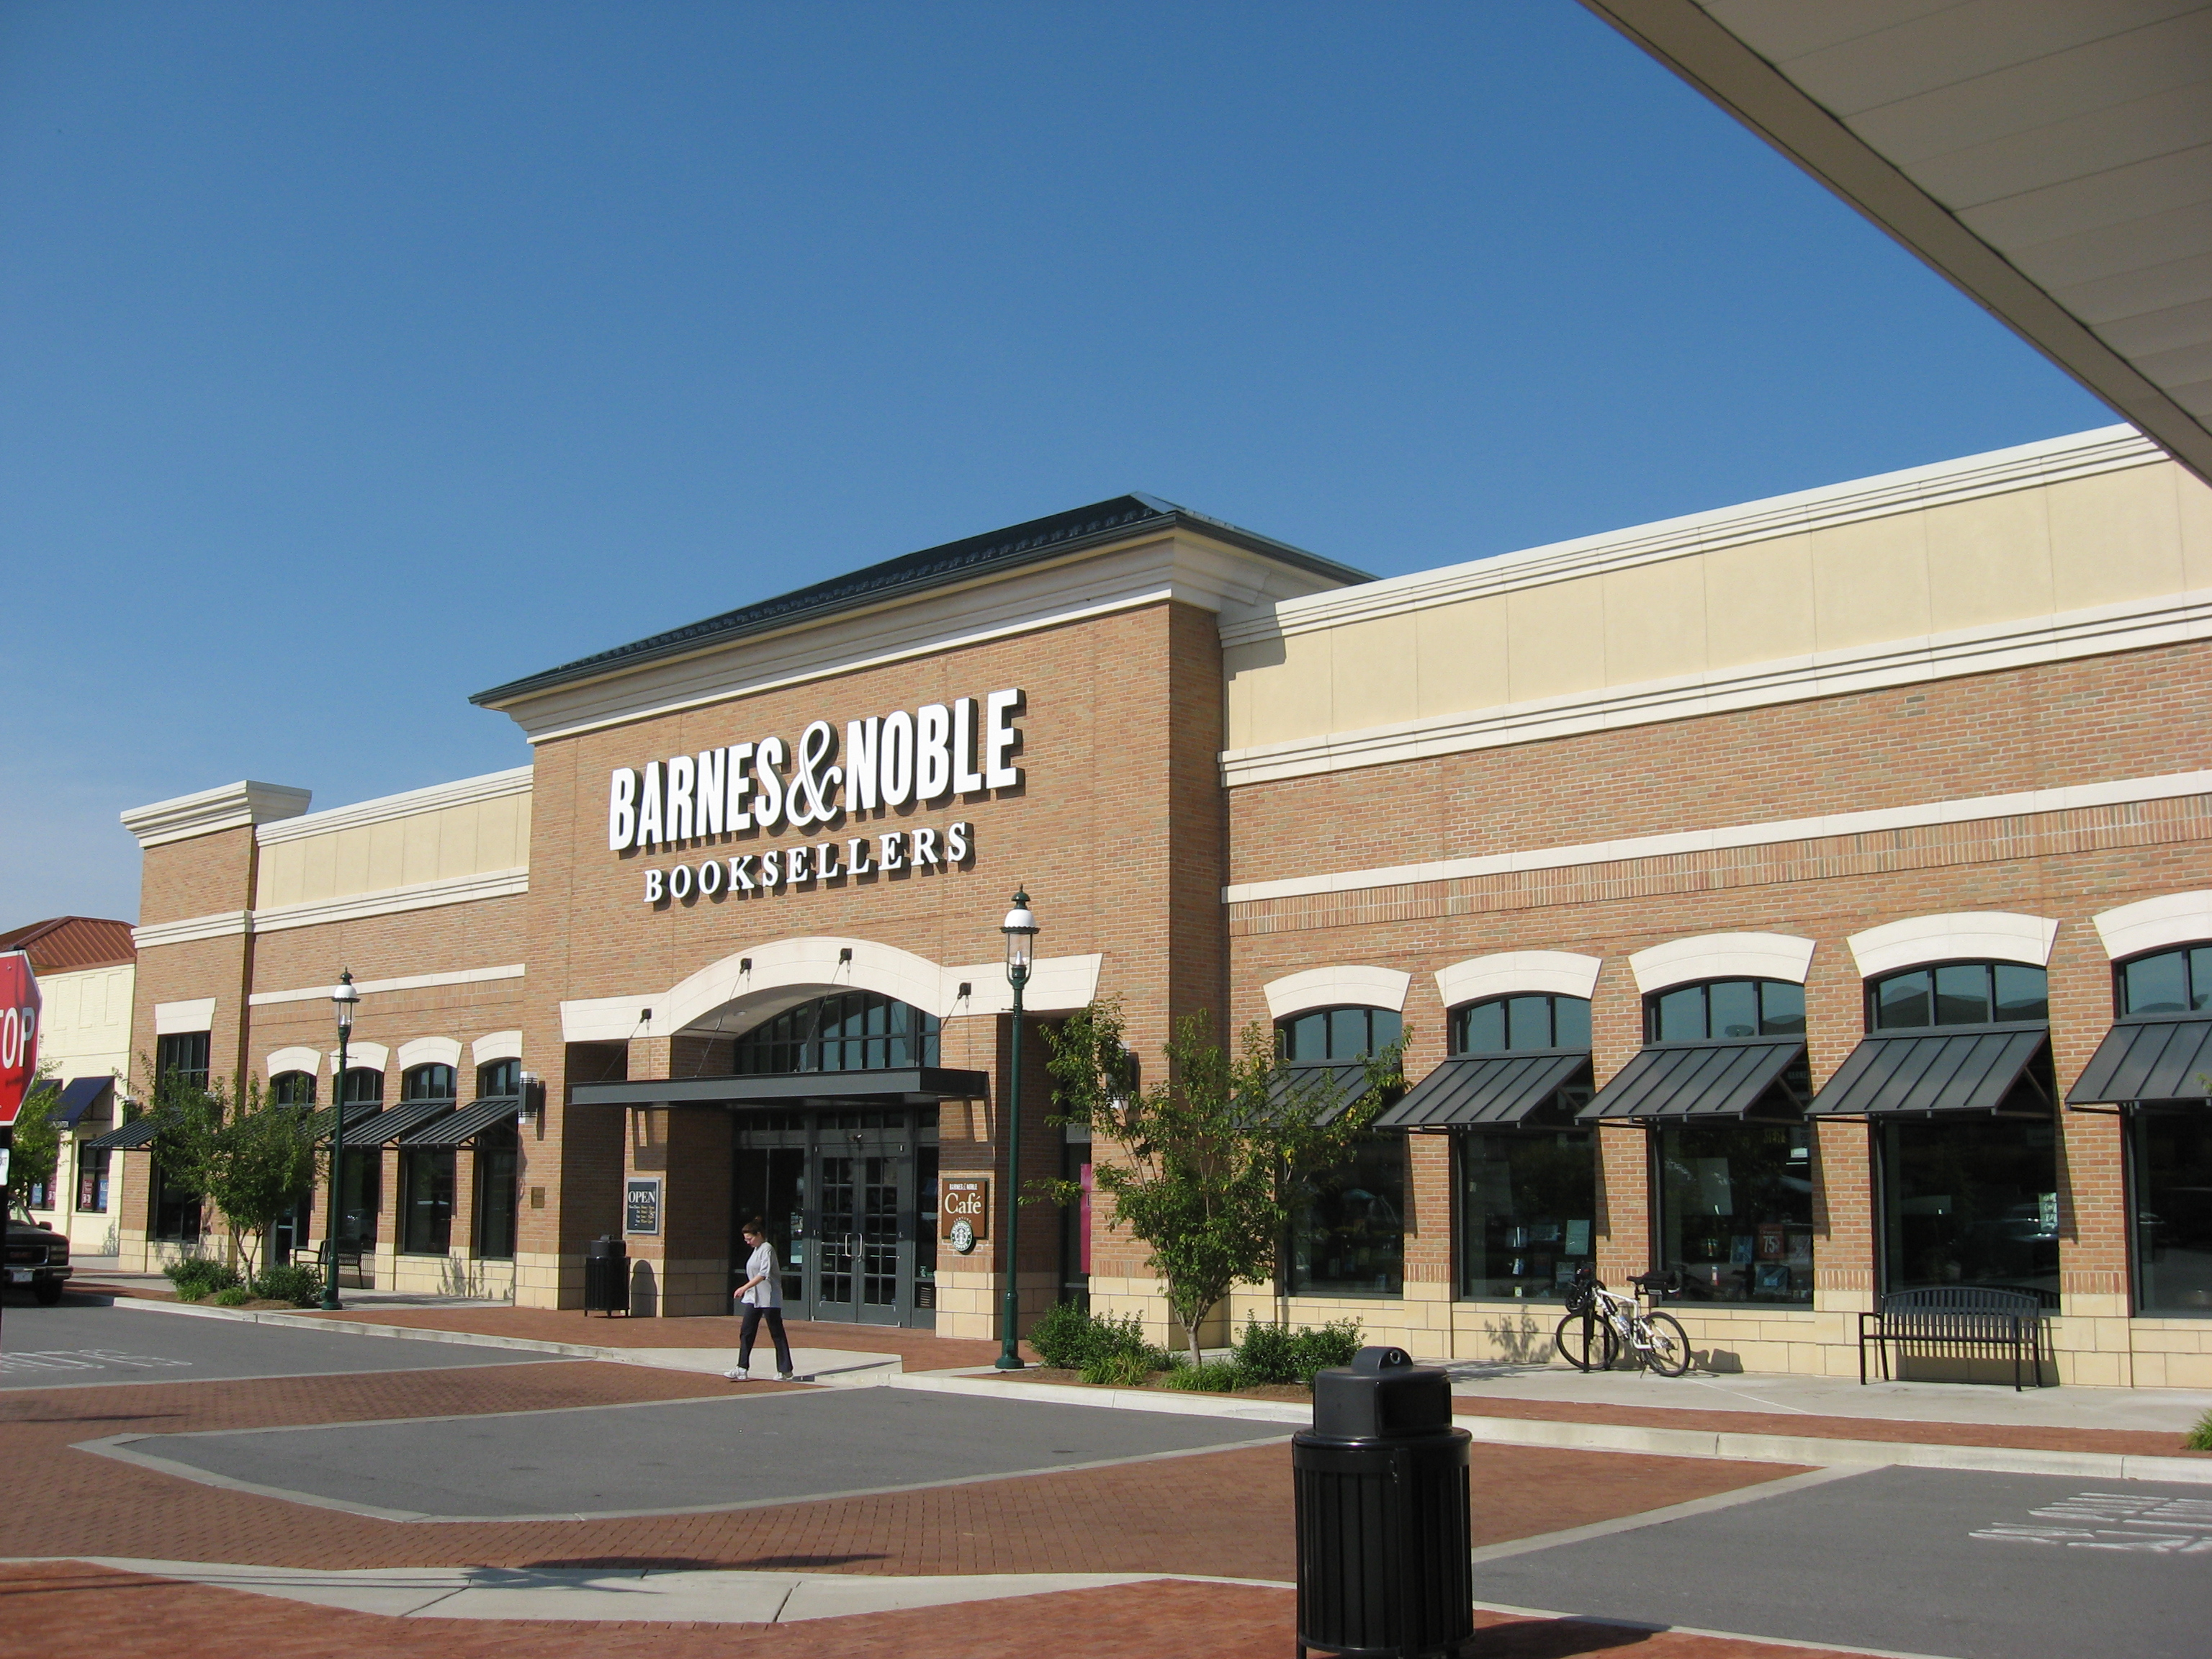 k Followers, Following, 2, Posts - See Instagram photos and videos from Barnes & Noble (@barnesandnoble).